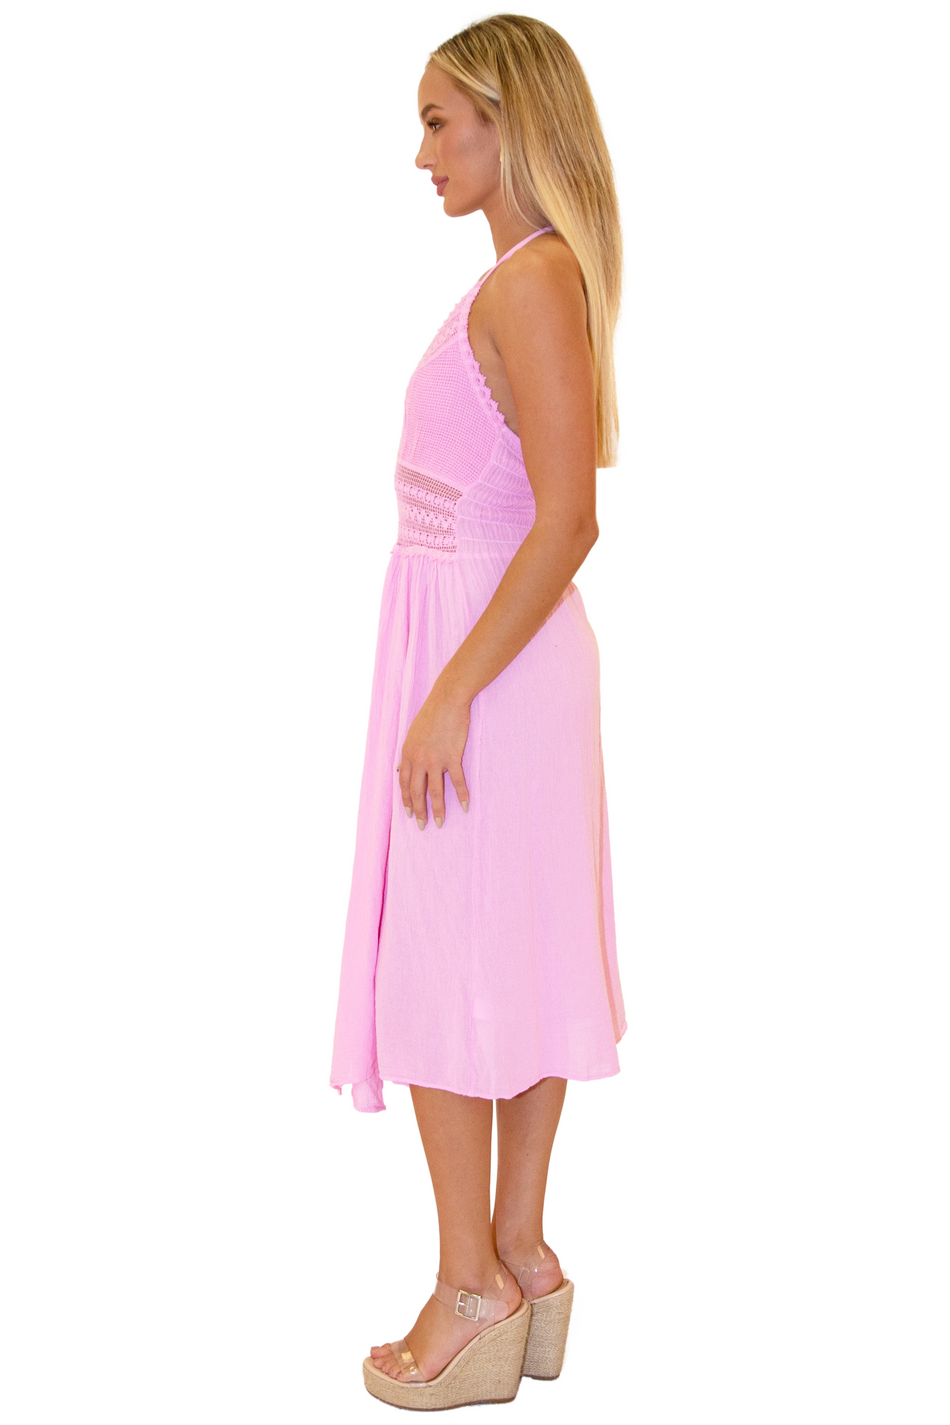 NW1273 - Pink Cotton Dress